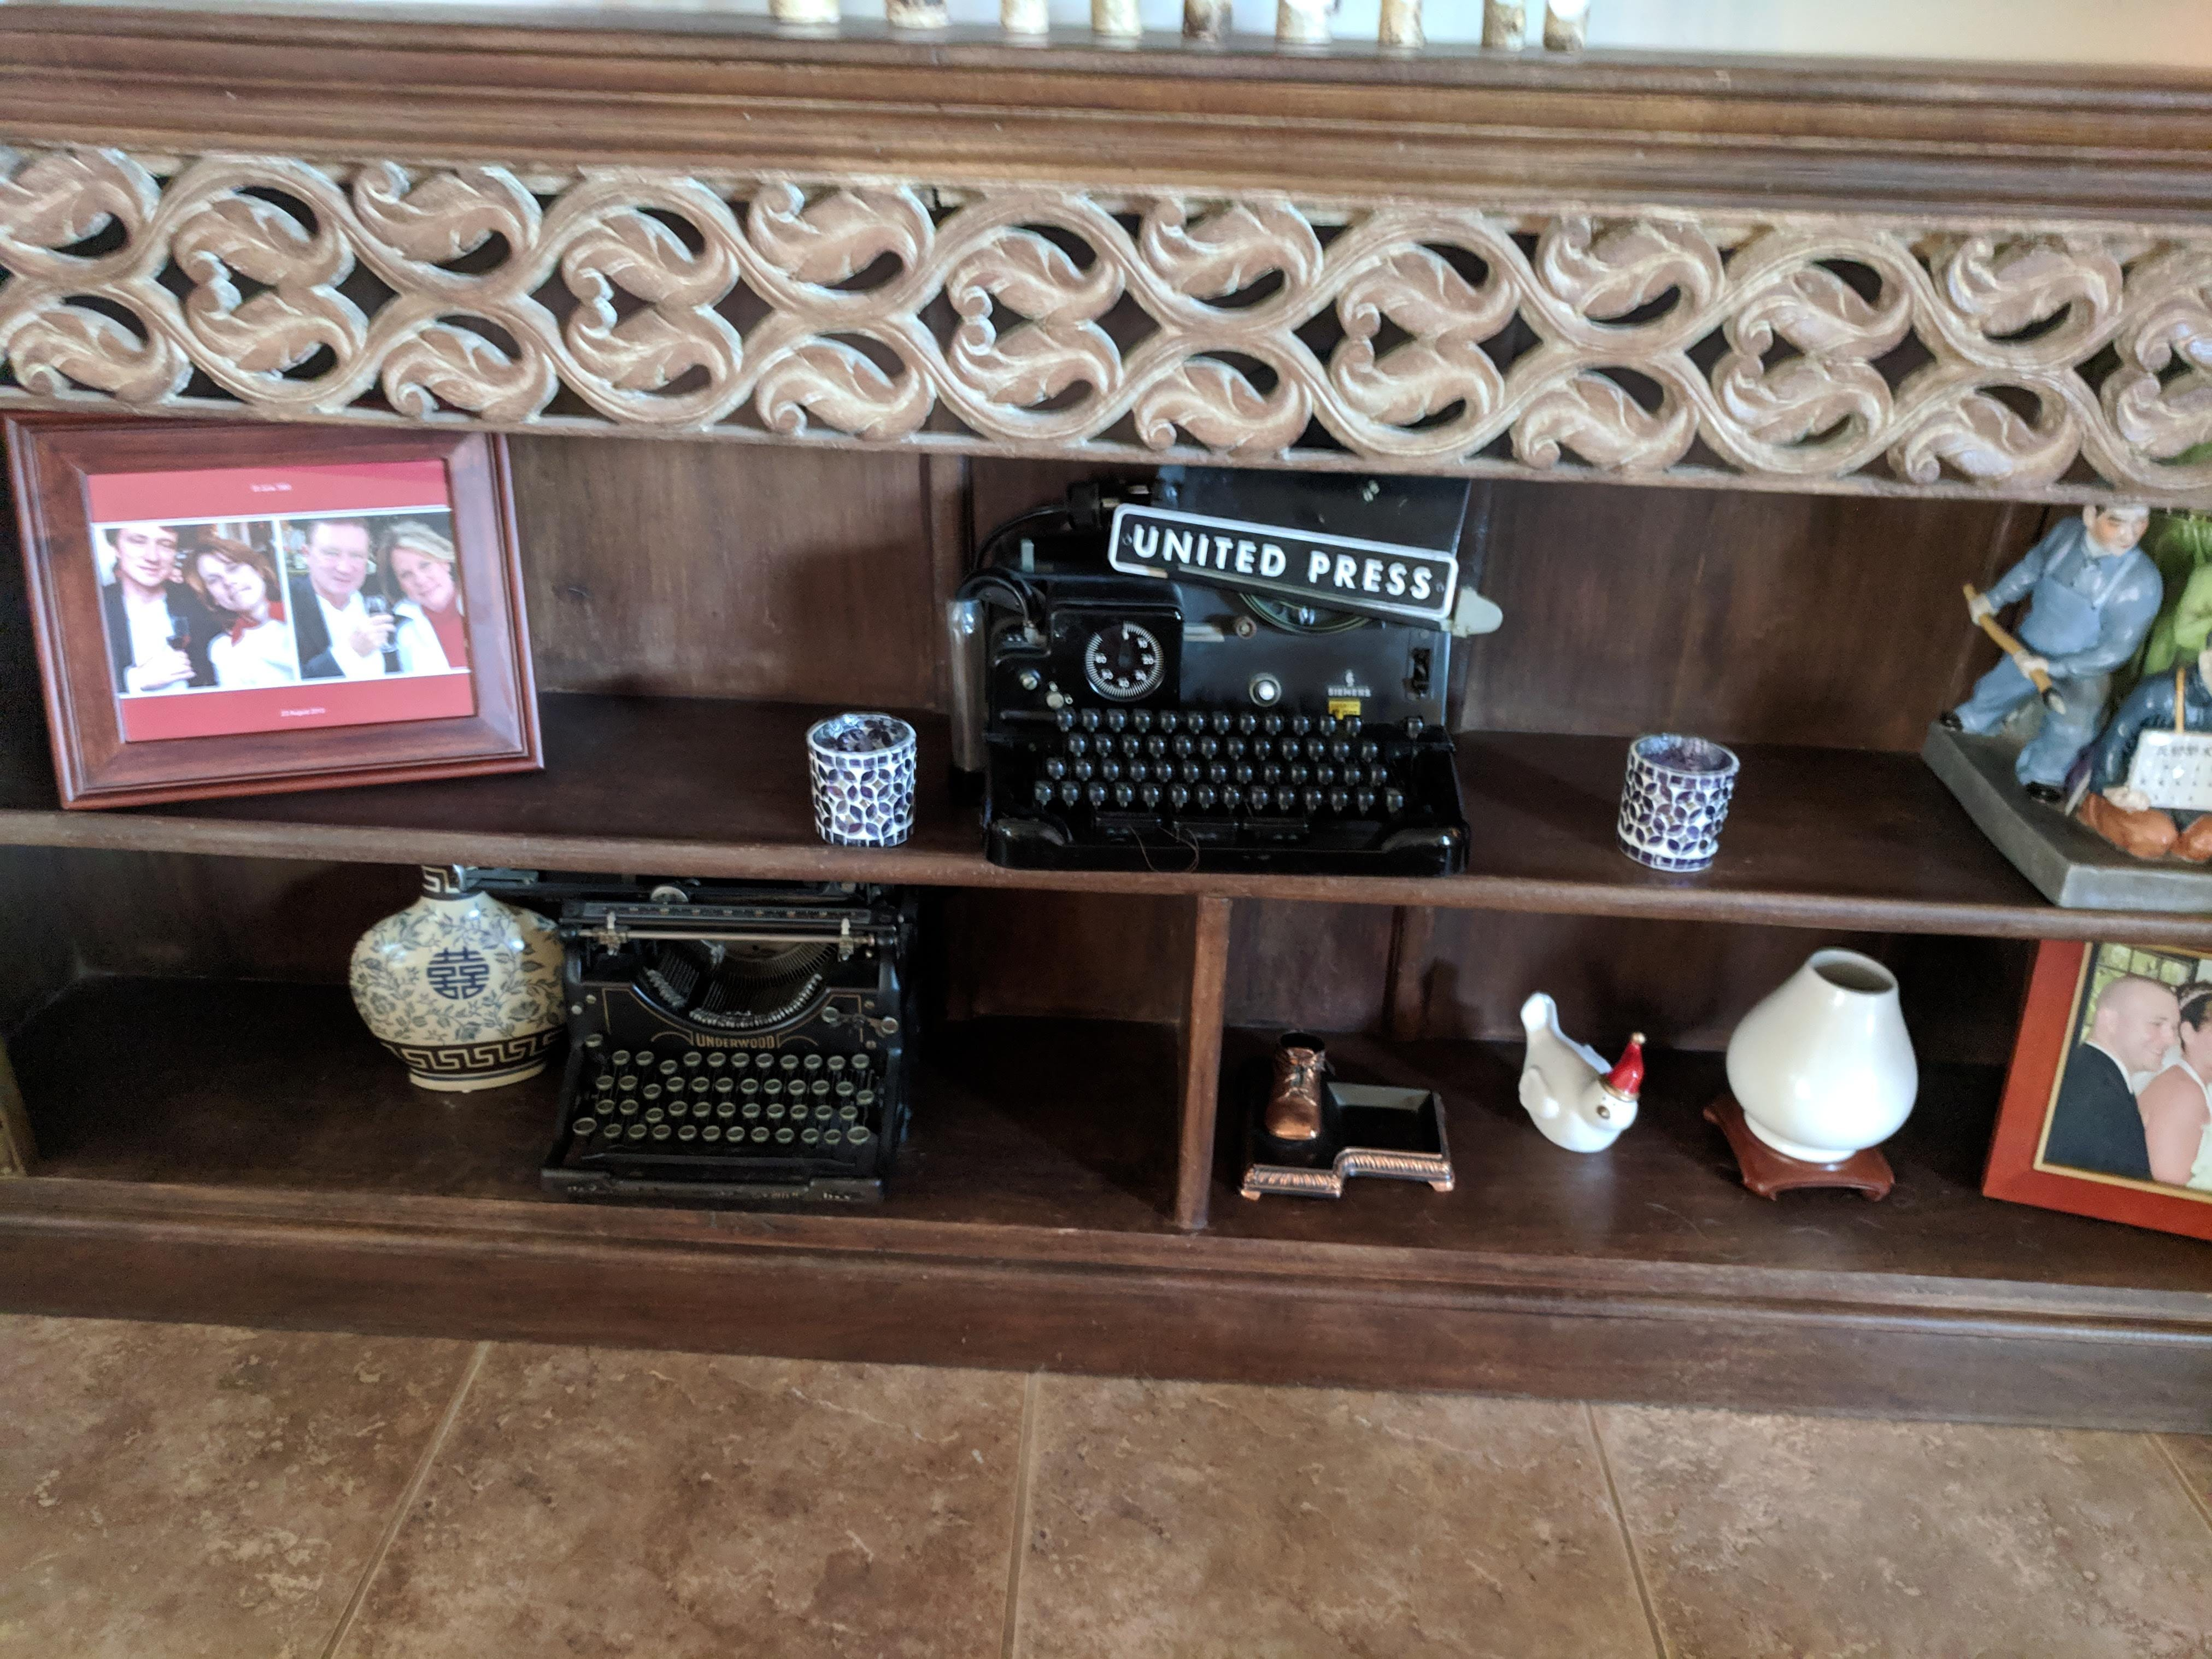 The Reaveses keep their journalism background on display with vintage typewriters in their room.